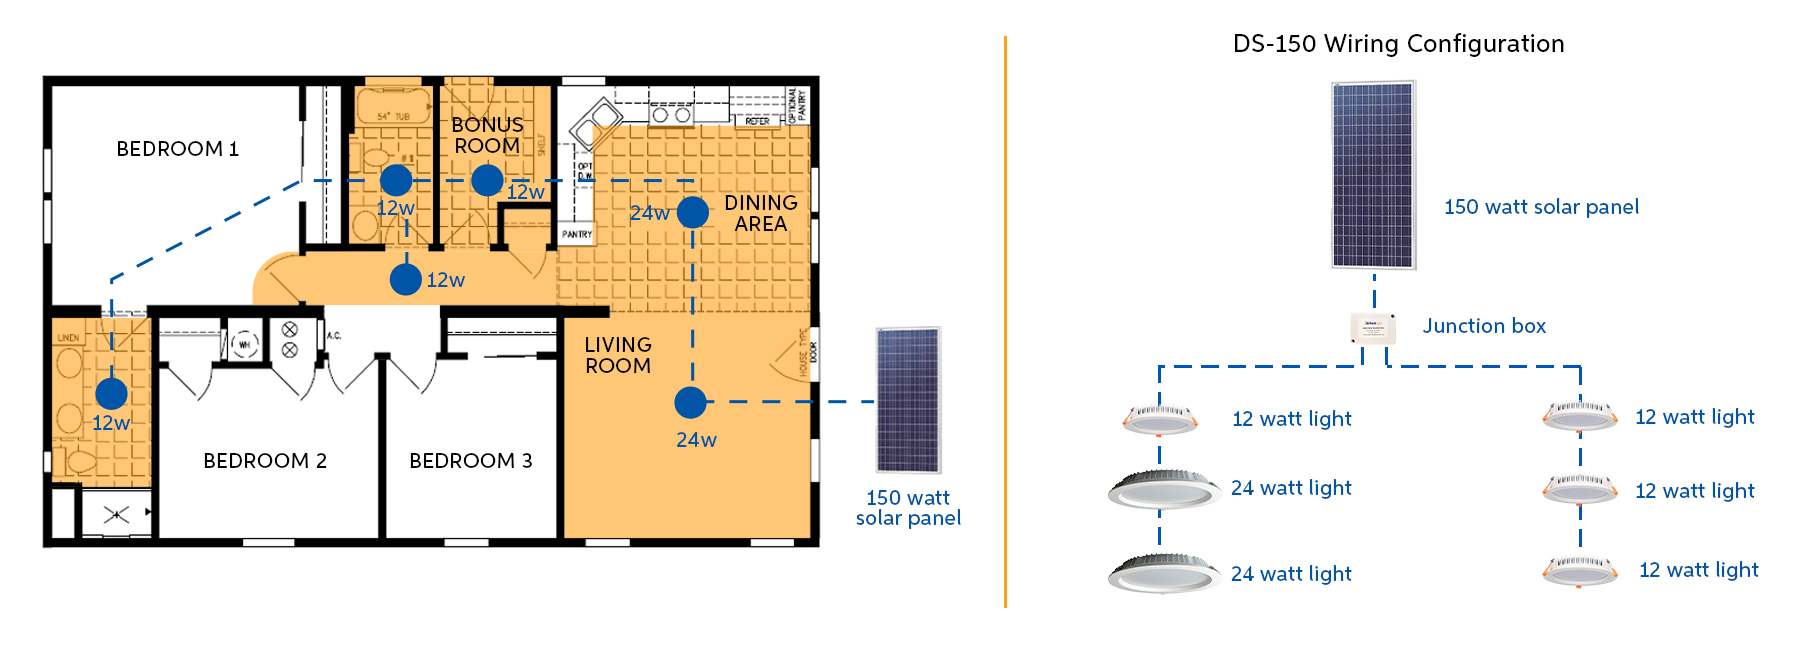 Solar lighting layout for three bedroom house